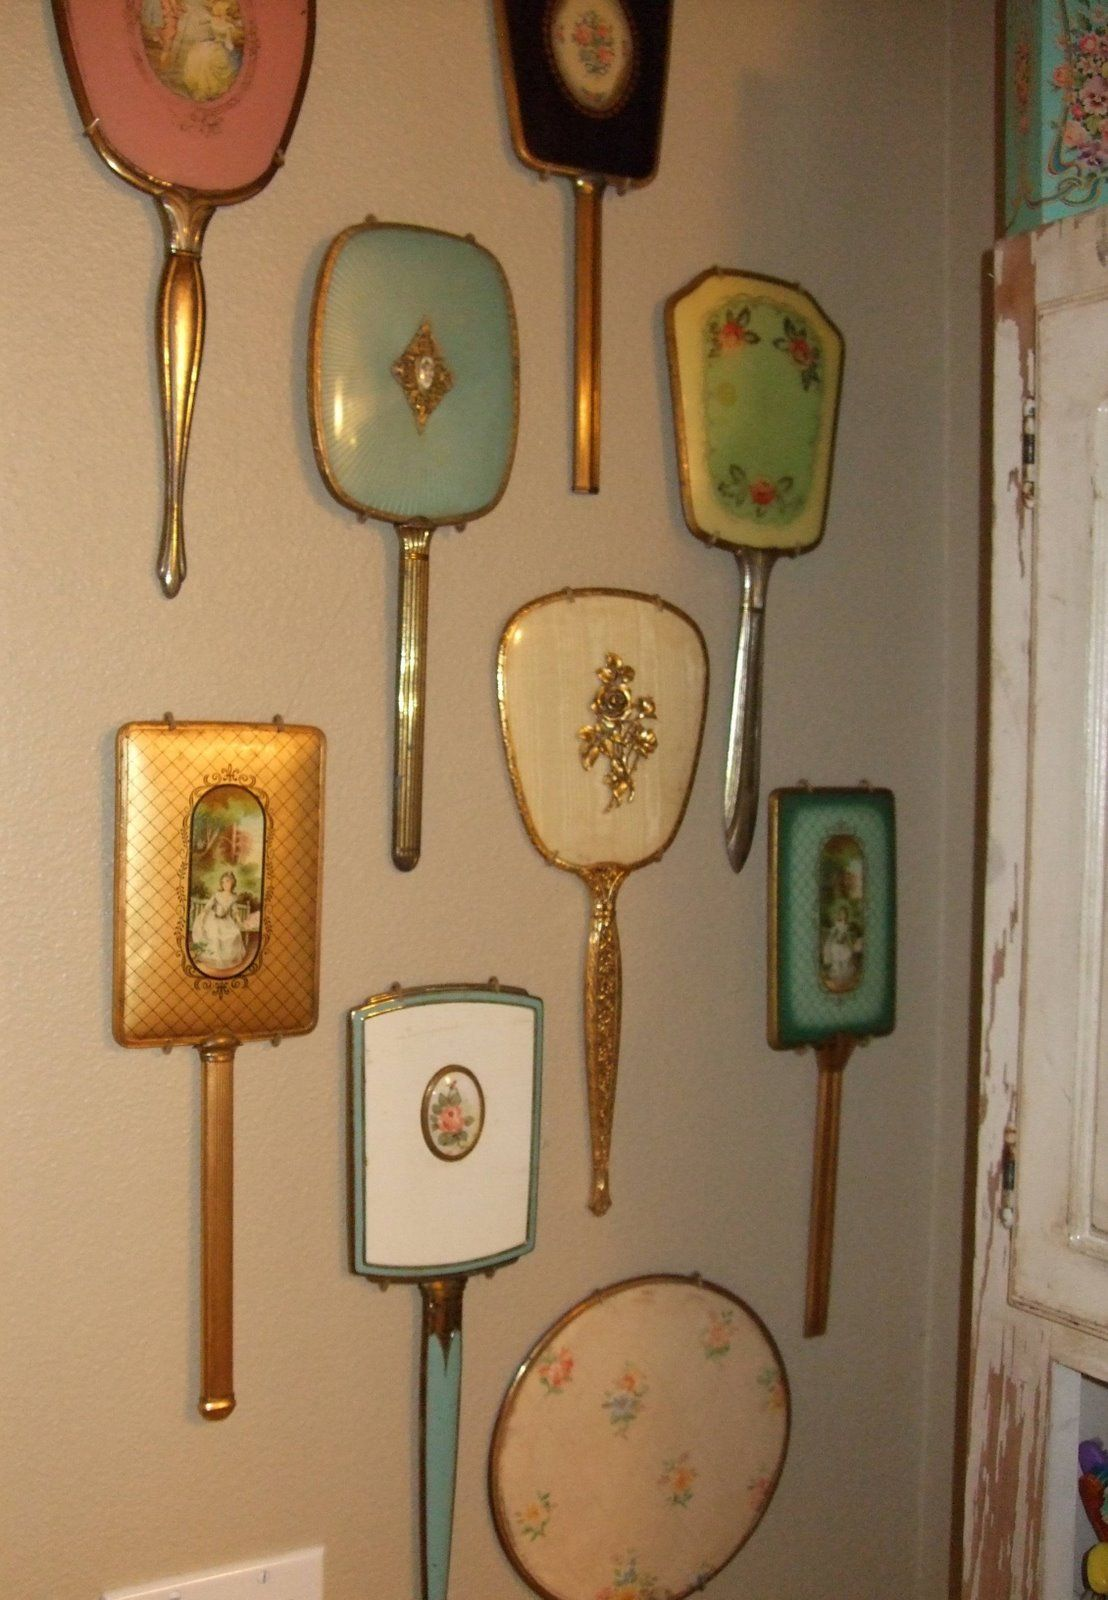 Eye candy vintage mirror collection displayed as wall art for the